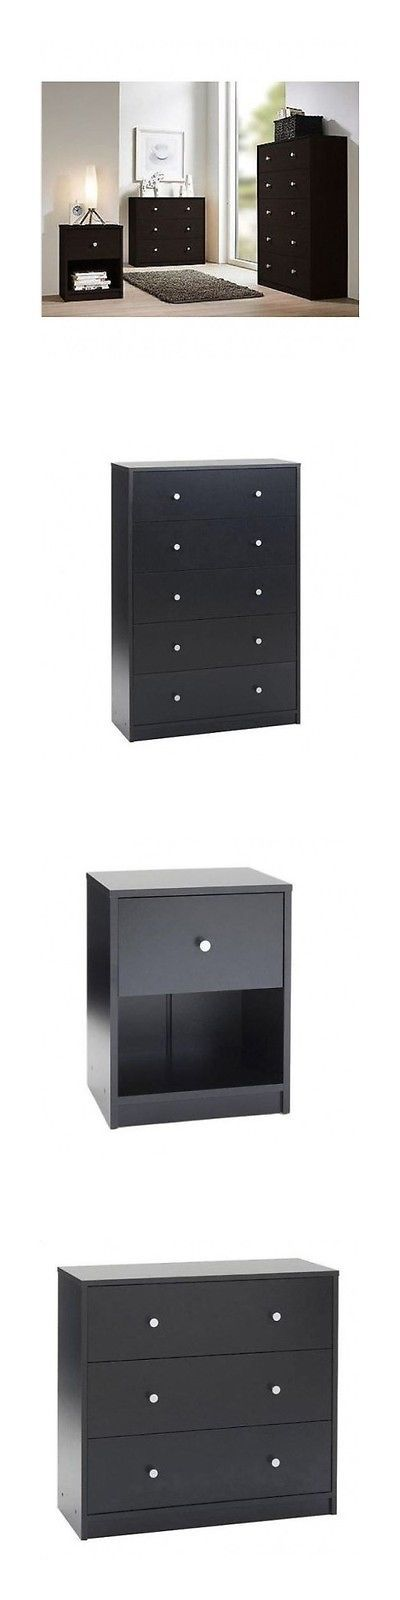 Bedding: 3 Piece Bedroom Furniture 5 Drawer Dresser Modern Dark Nightstand Clothes Chest BUY IT NOW ONLY: $299.99